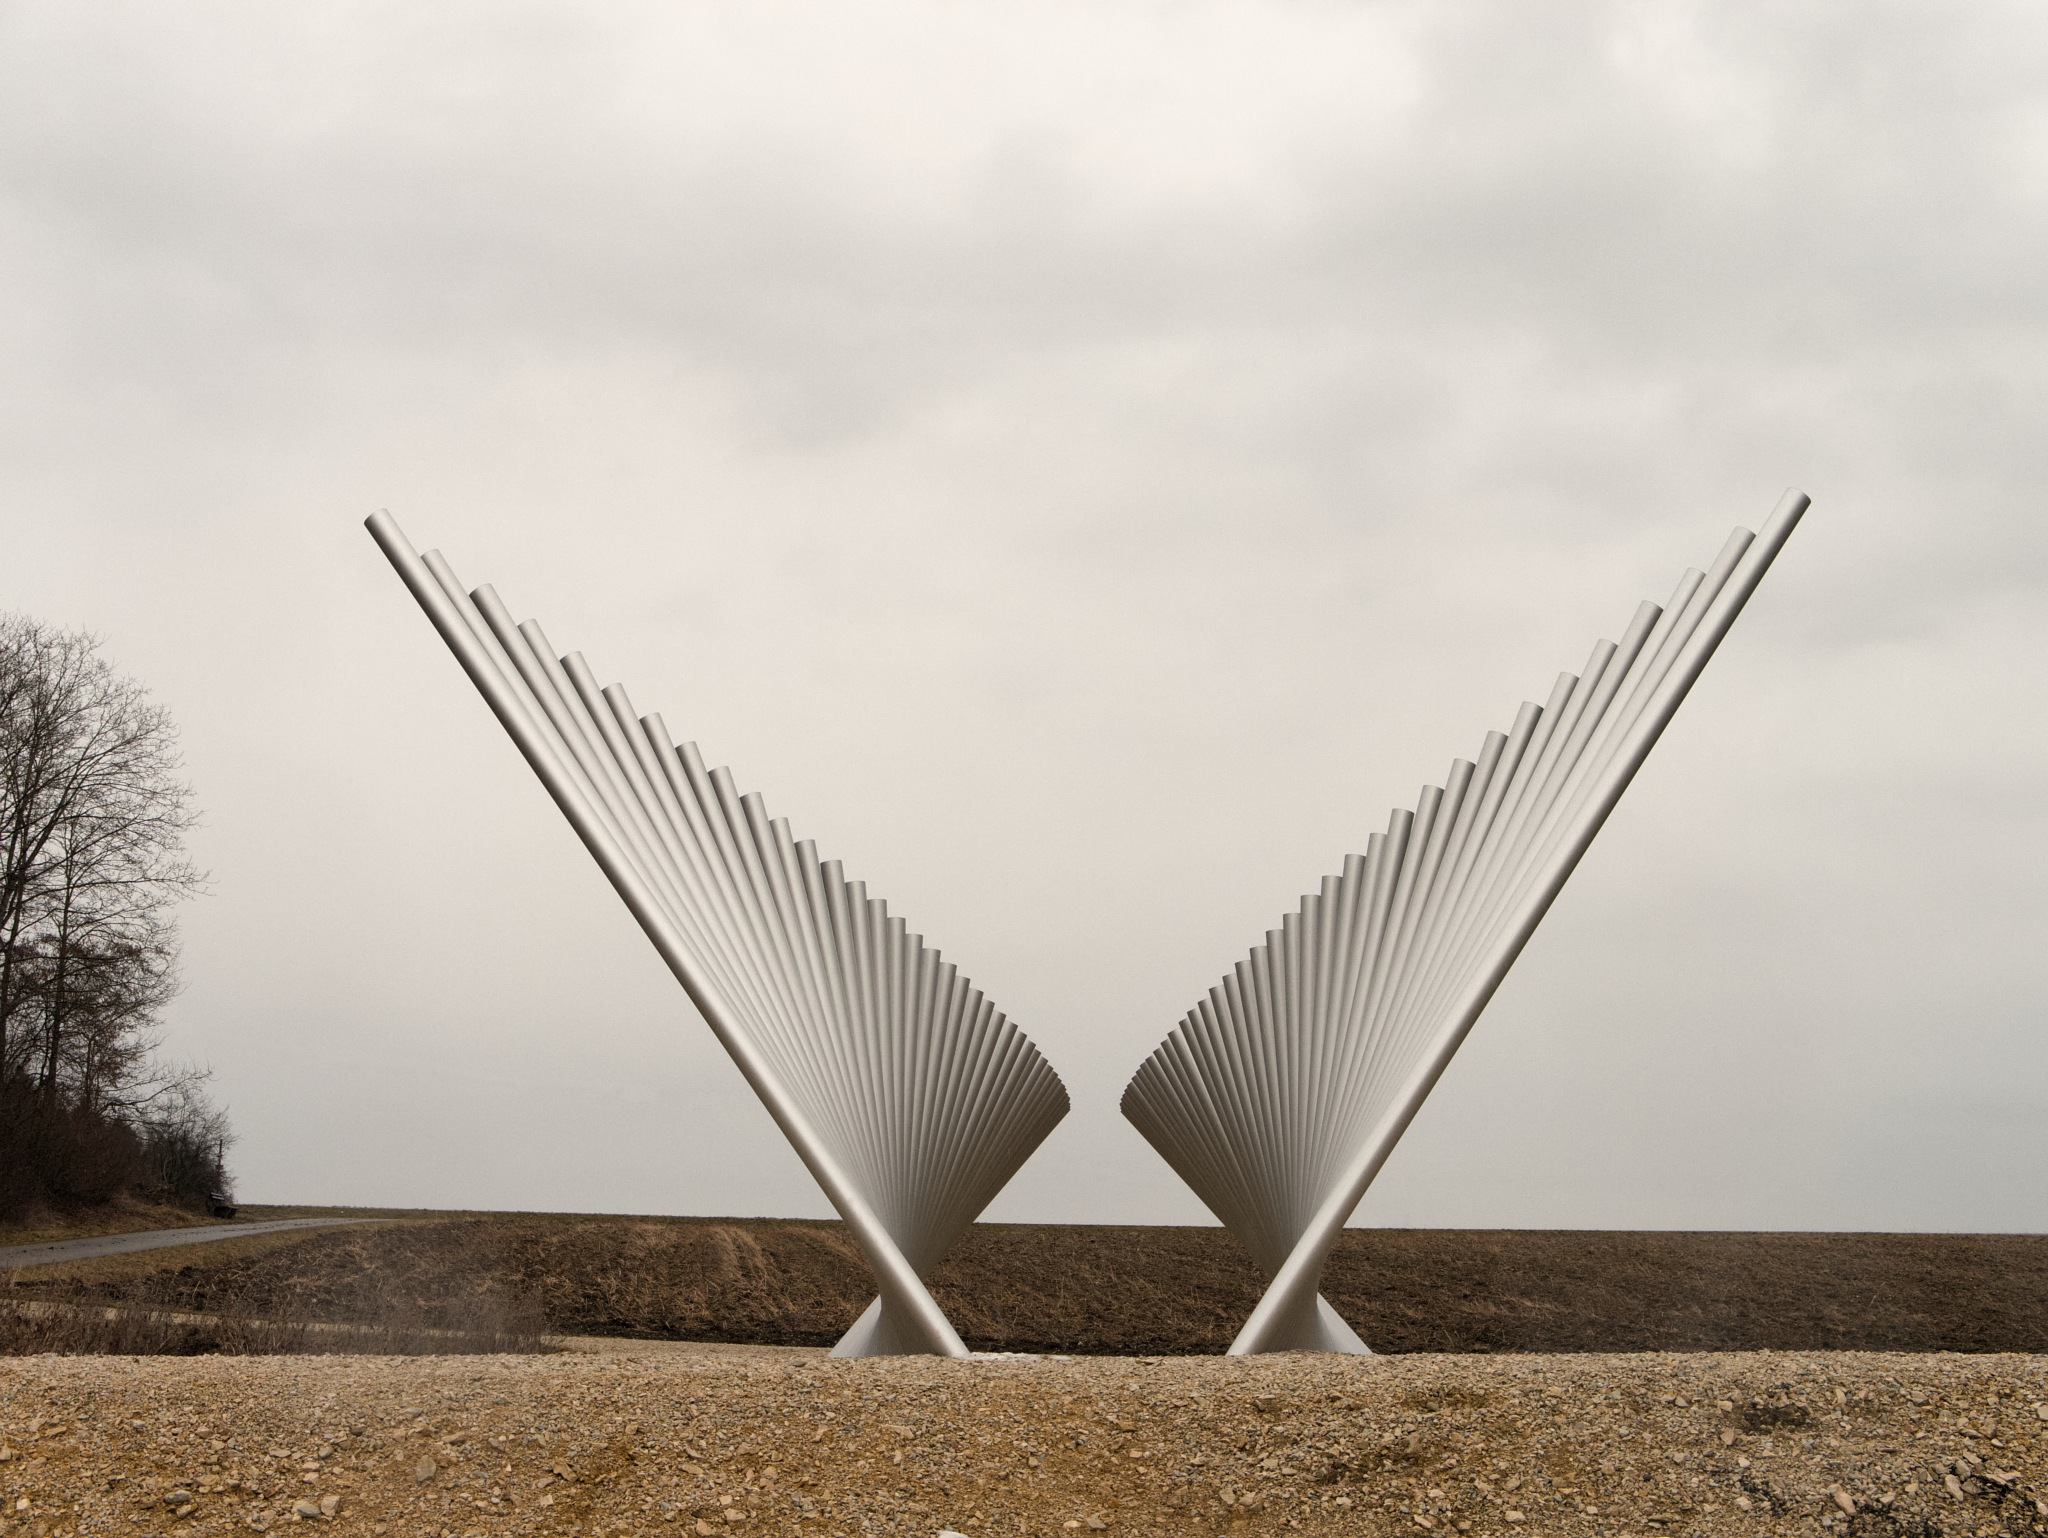 narrow and wide horizon sculpture by Mako7374